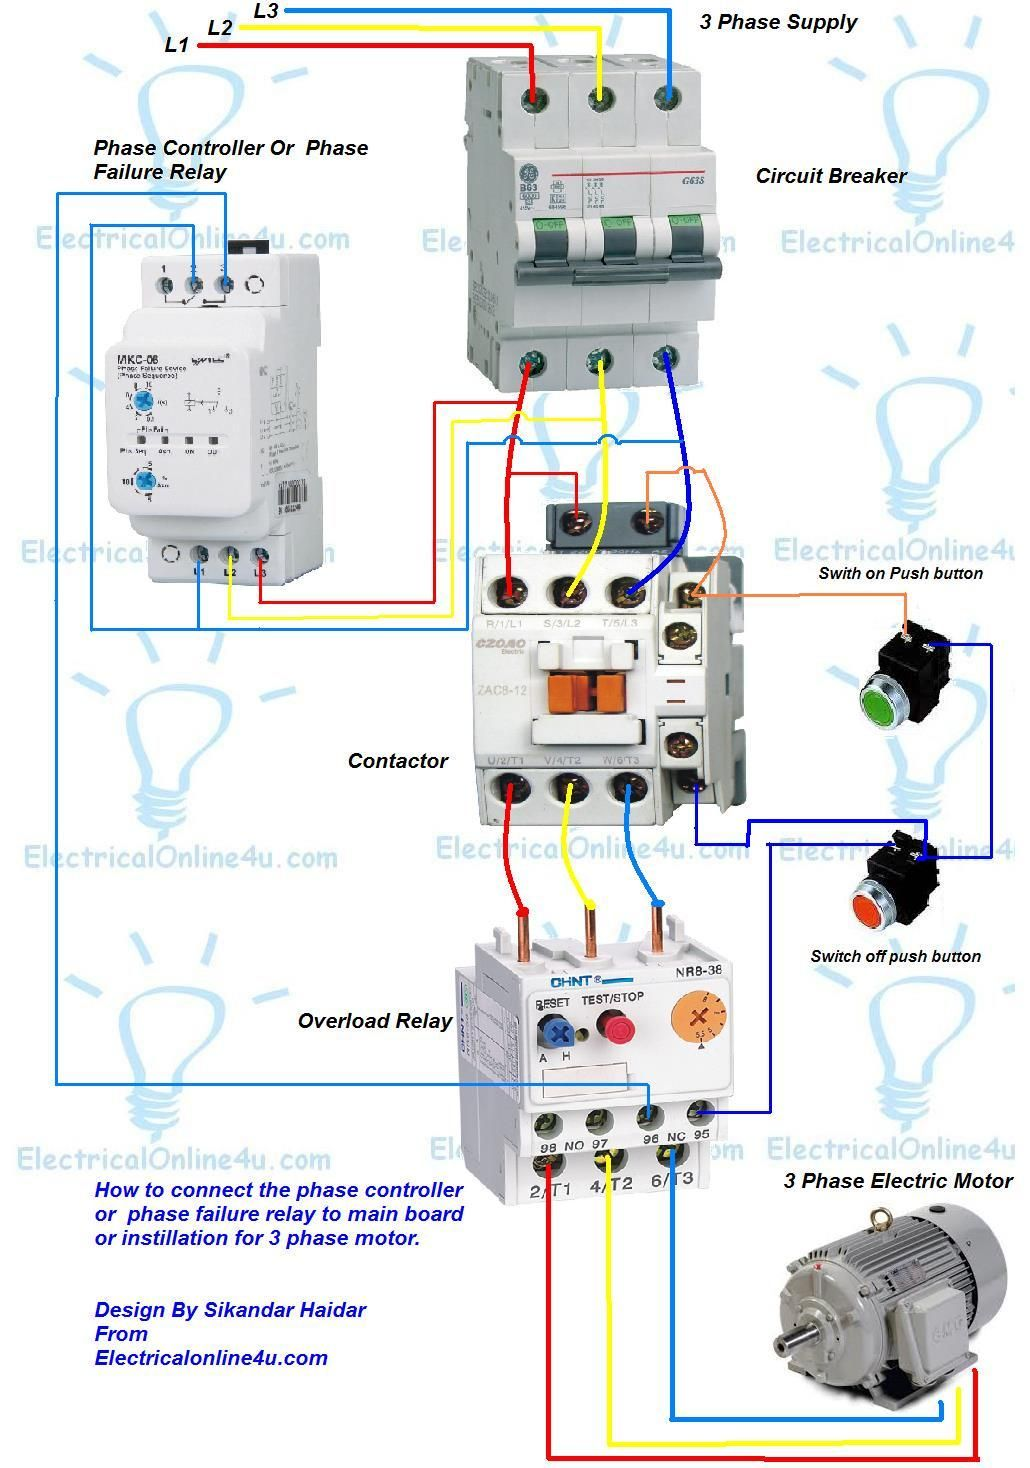 phase controller wiring phase failure relay diagram di on line rh pinterest com lighting control relay wiring diagram dometic relay control wiring